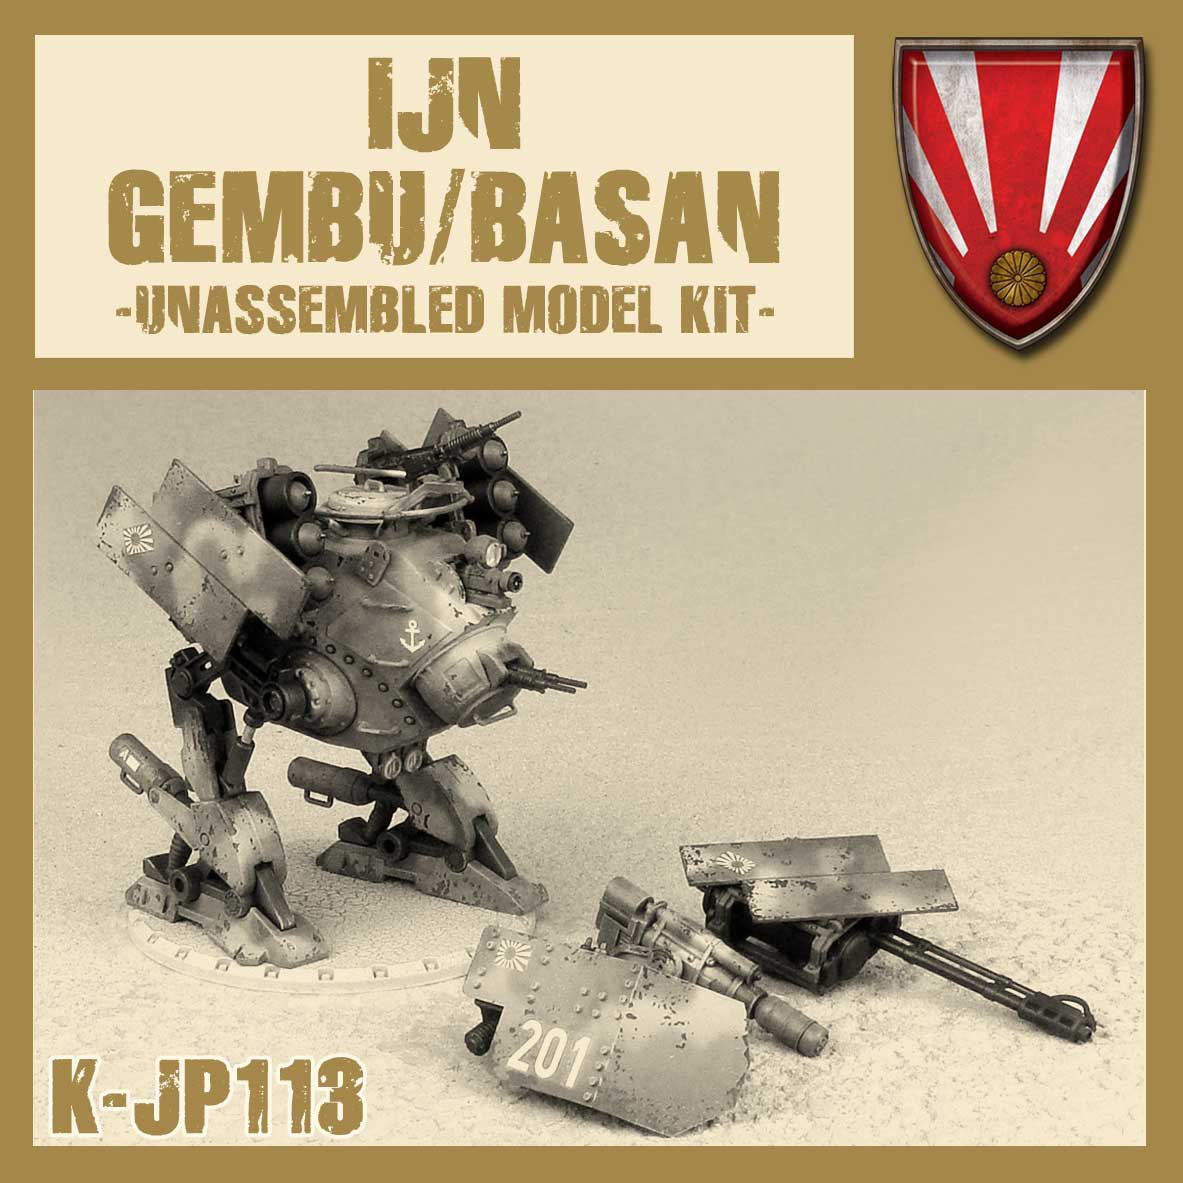 Gembu/Basan Kit